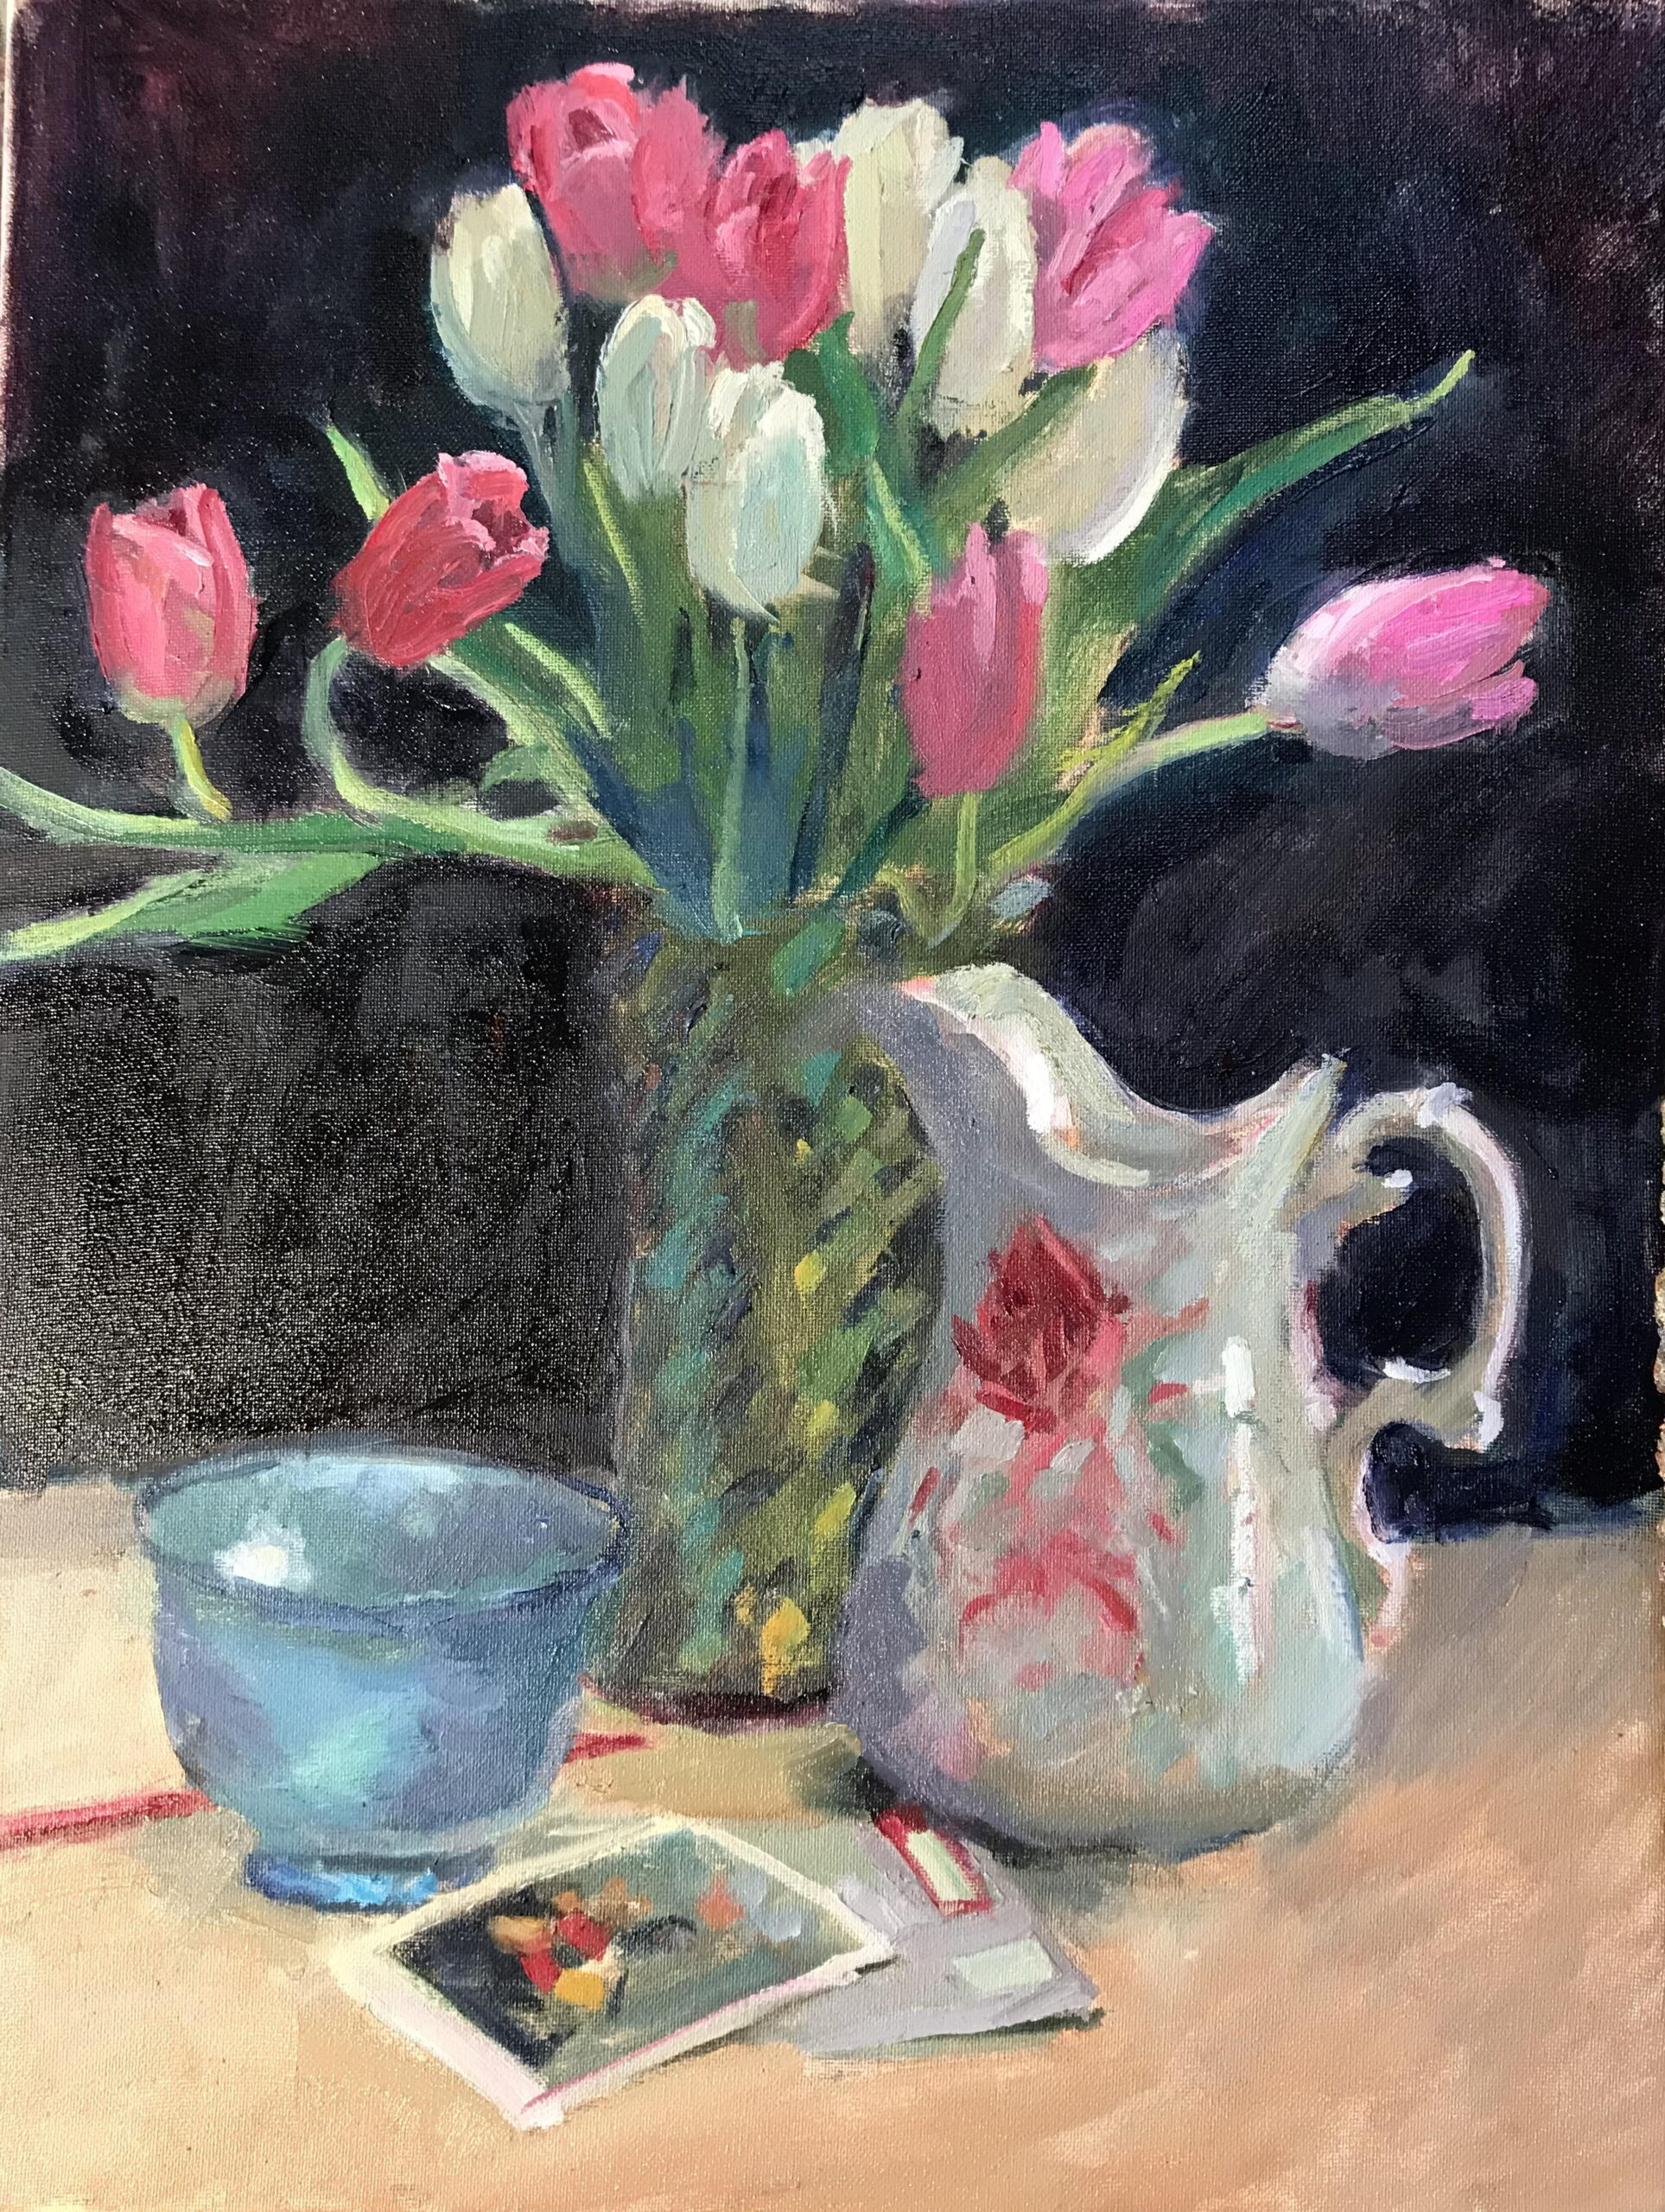 Pink and White Tulips, Oil on Canvas, 24 x 18 Inches, by Susan Grisell, $750